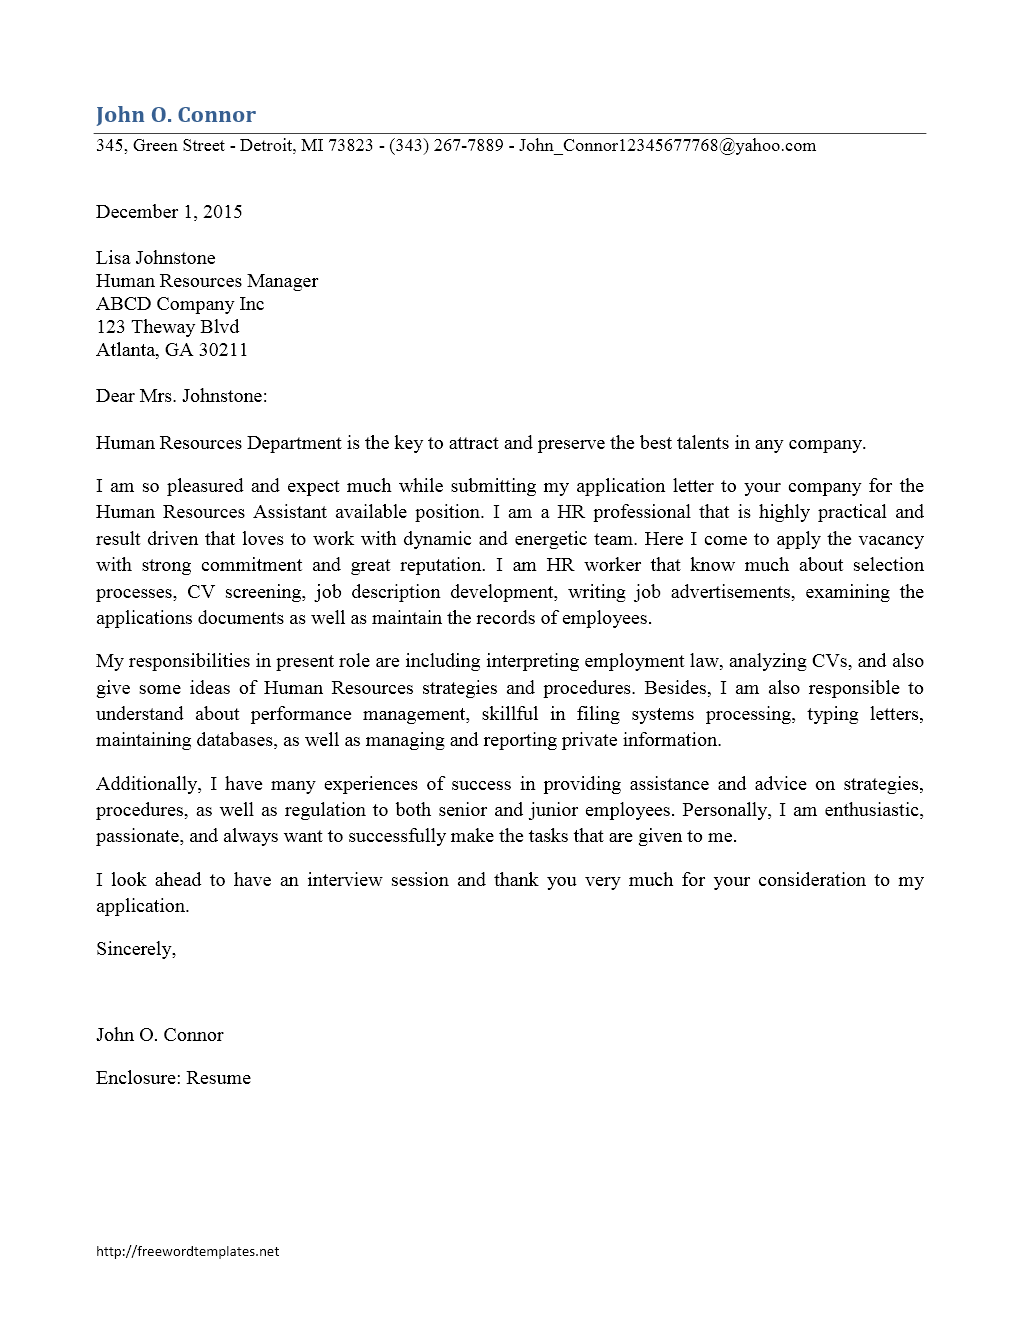 Sysadmin Cover Letter Gallery - Cover Letter Ideas